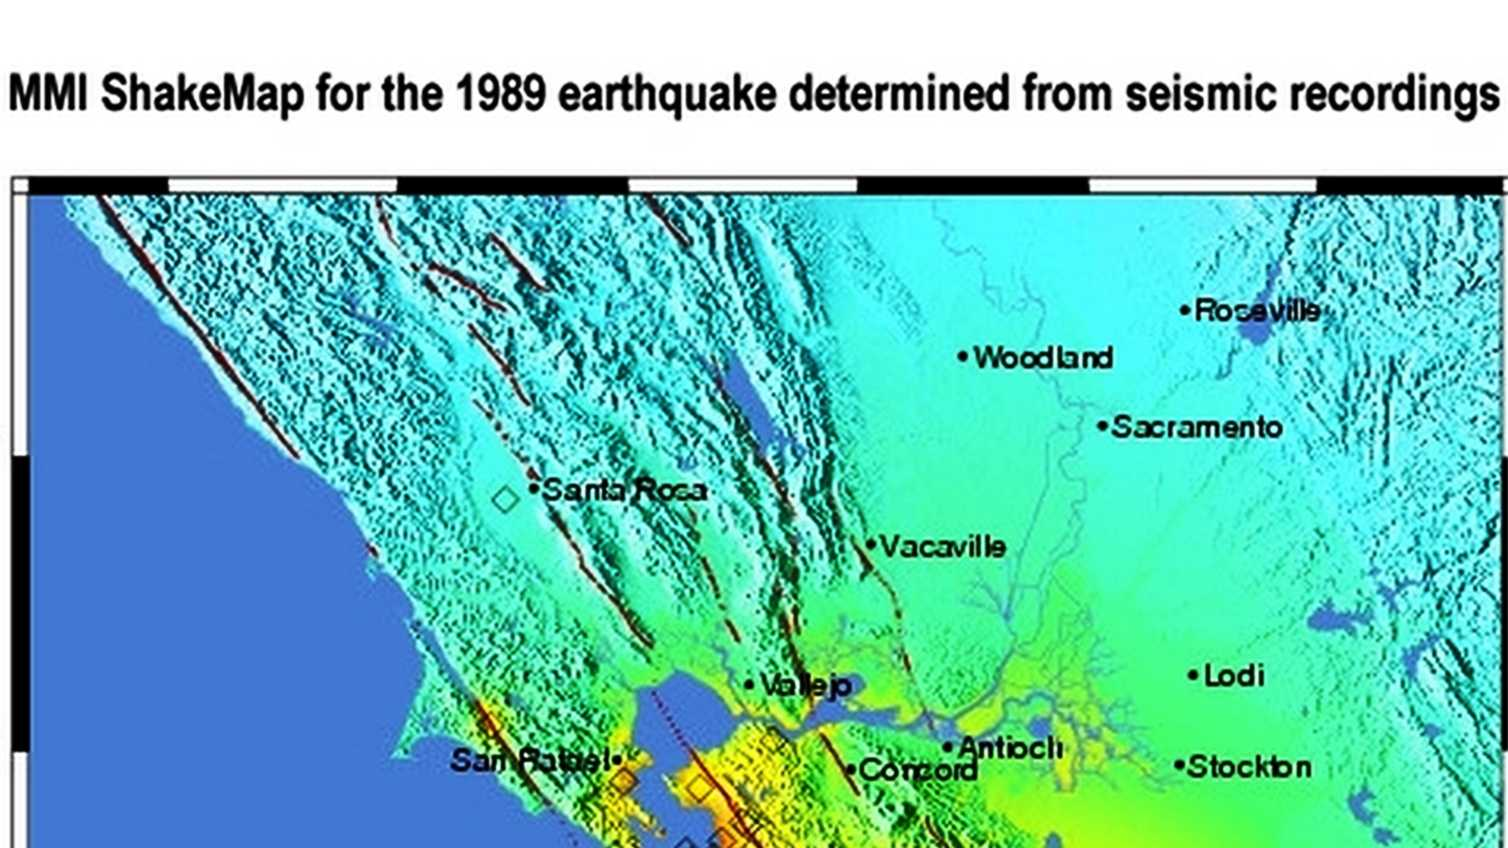 1989 earthquake shake map